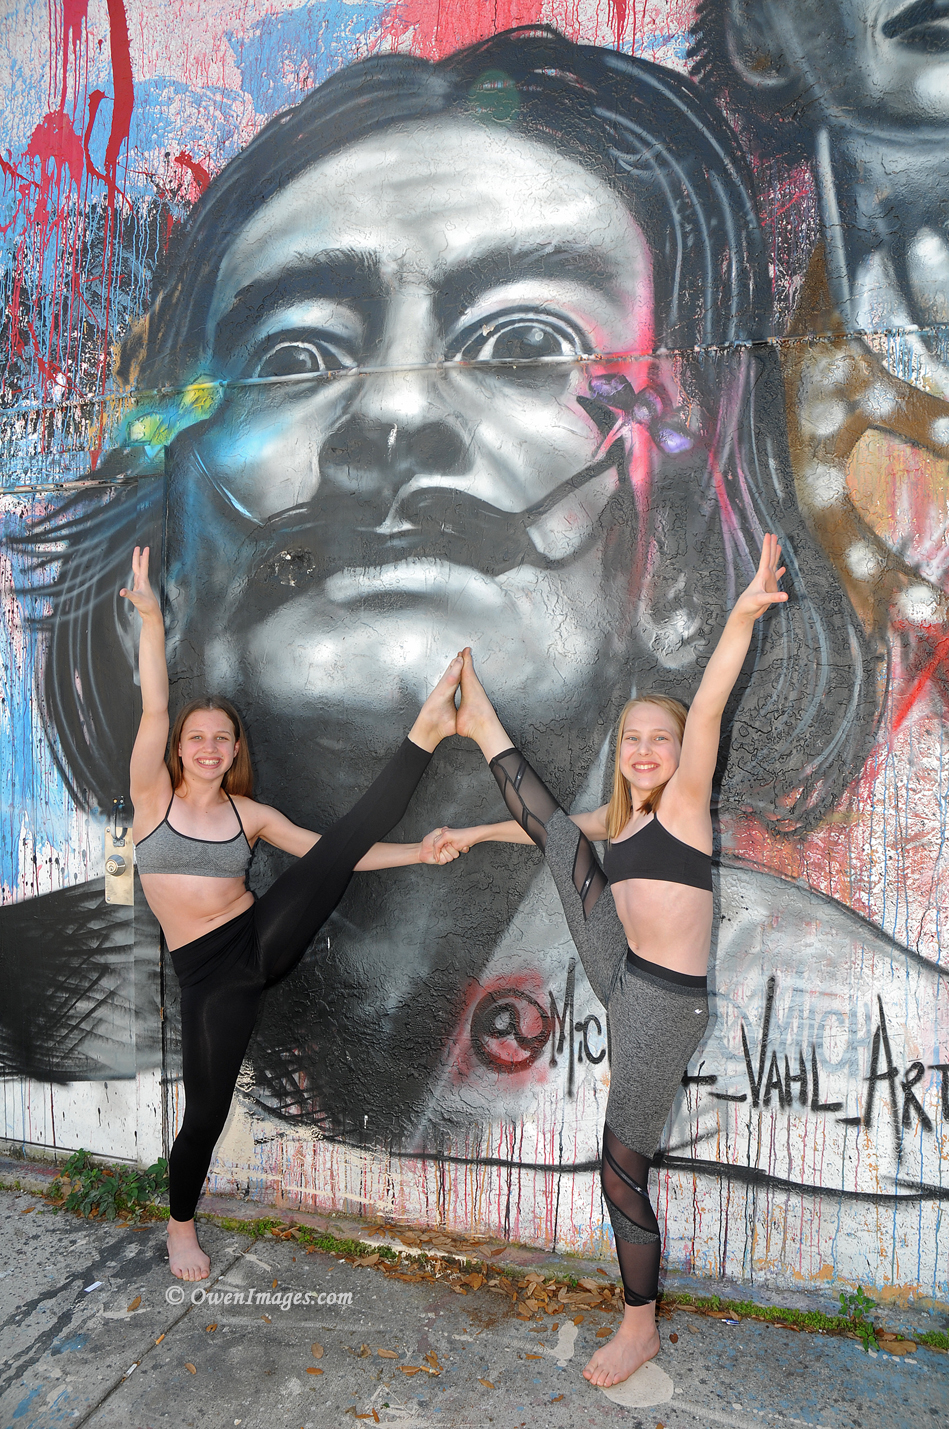 Two gymnasts pose in front of an alley mural depicting Dalí in downtown Saint Petersburg, Florida